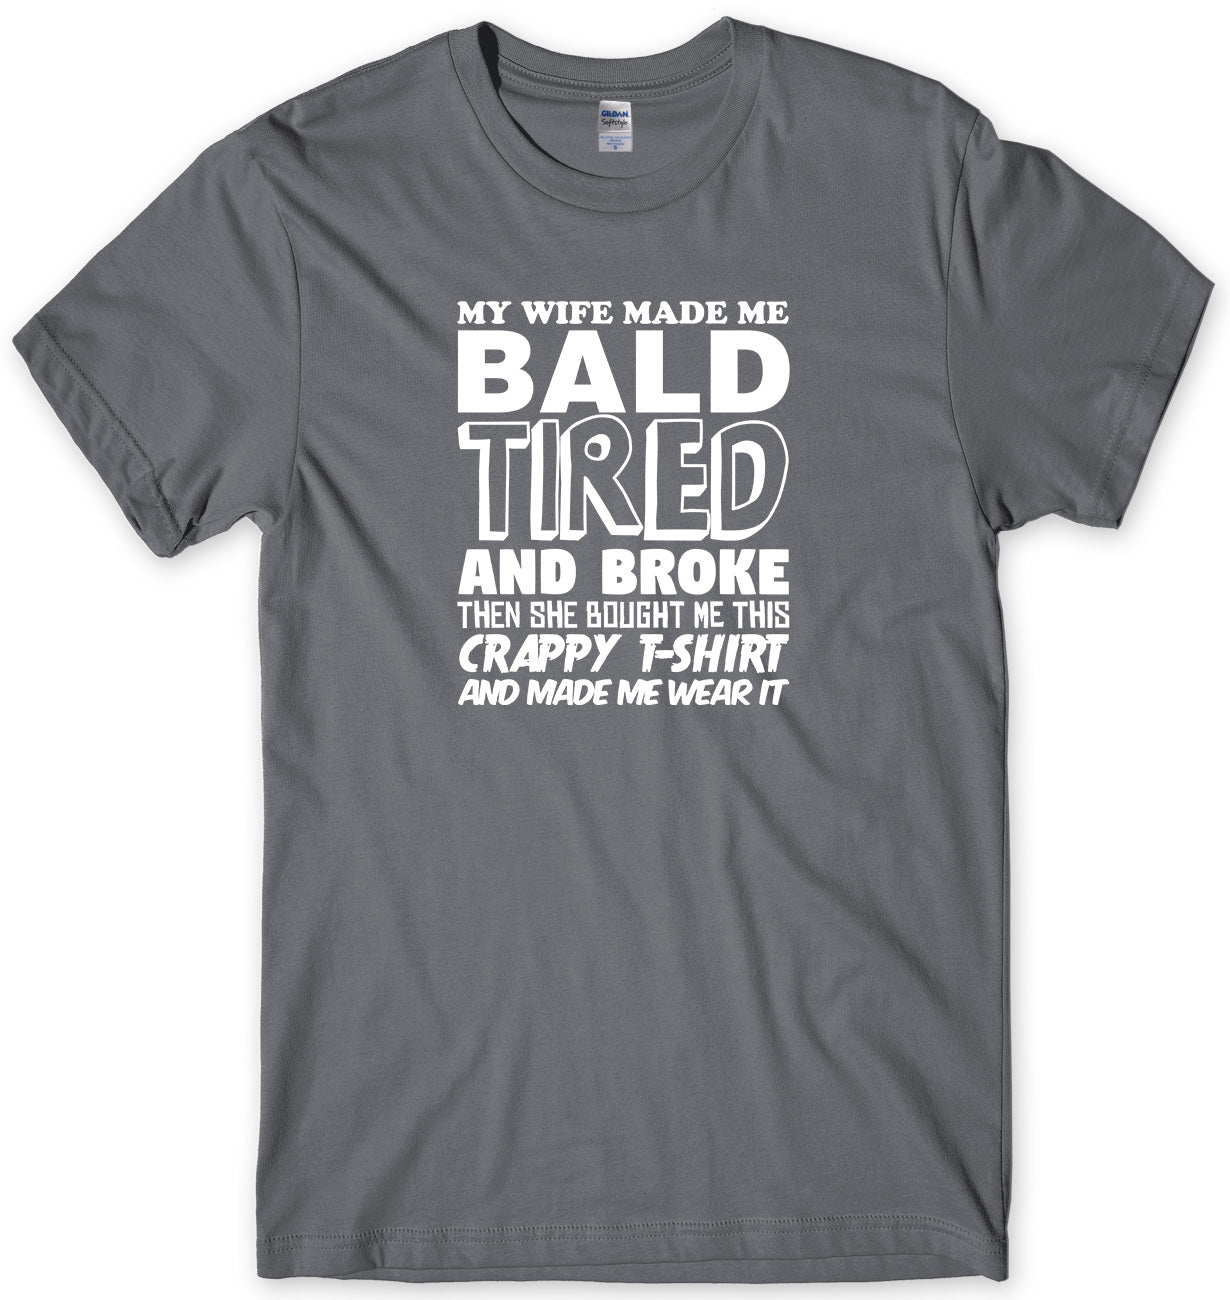 MY WIFE MADE ME BALD TIRED AND BROKE MENS FUNNY UNISEX T-SHIRT